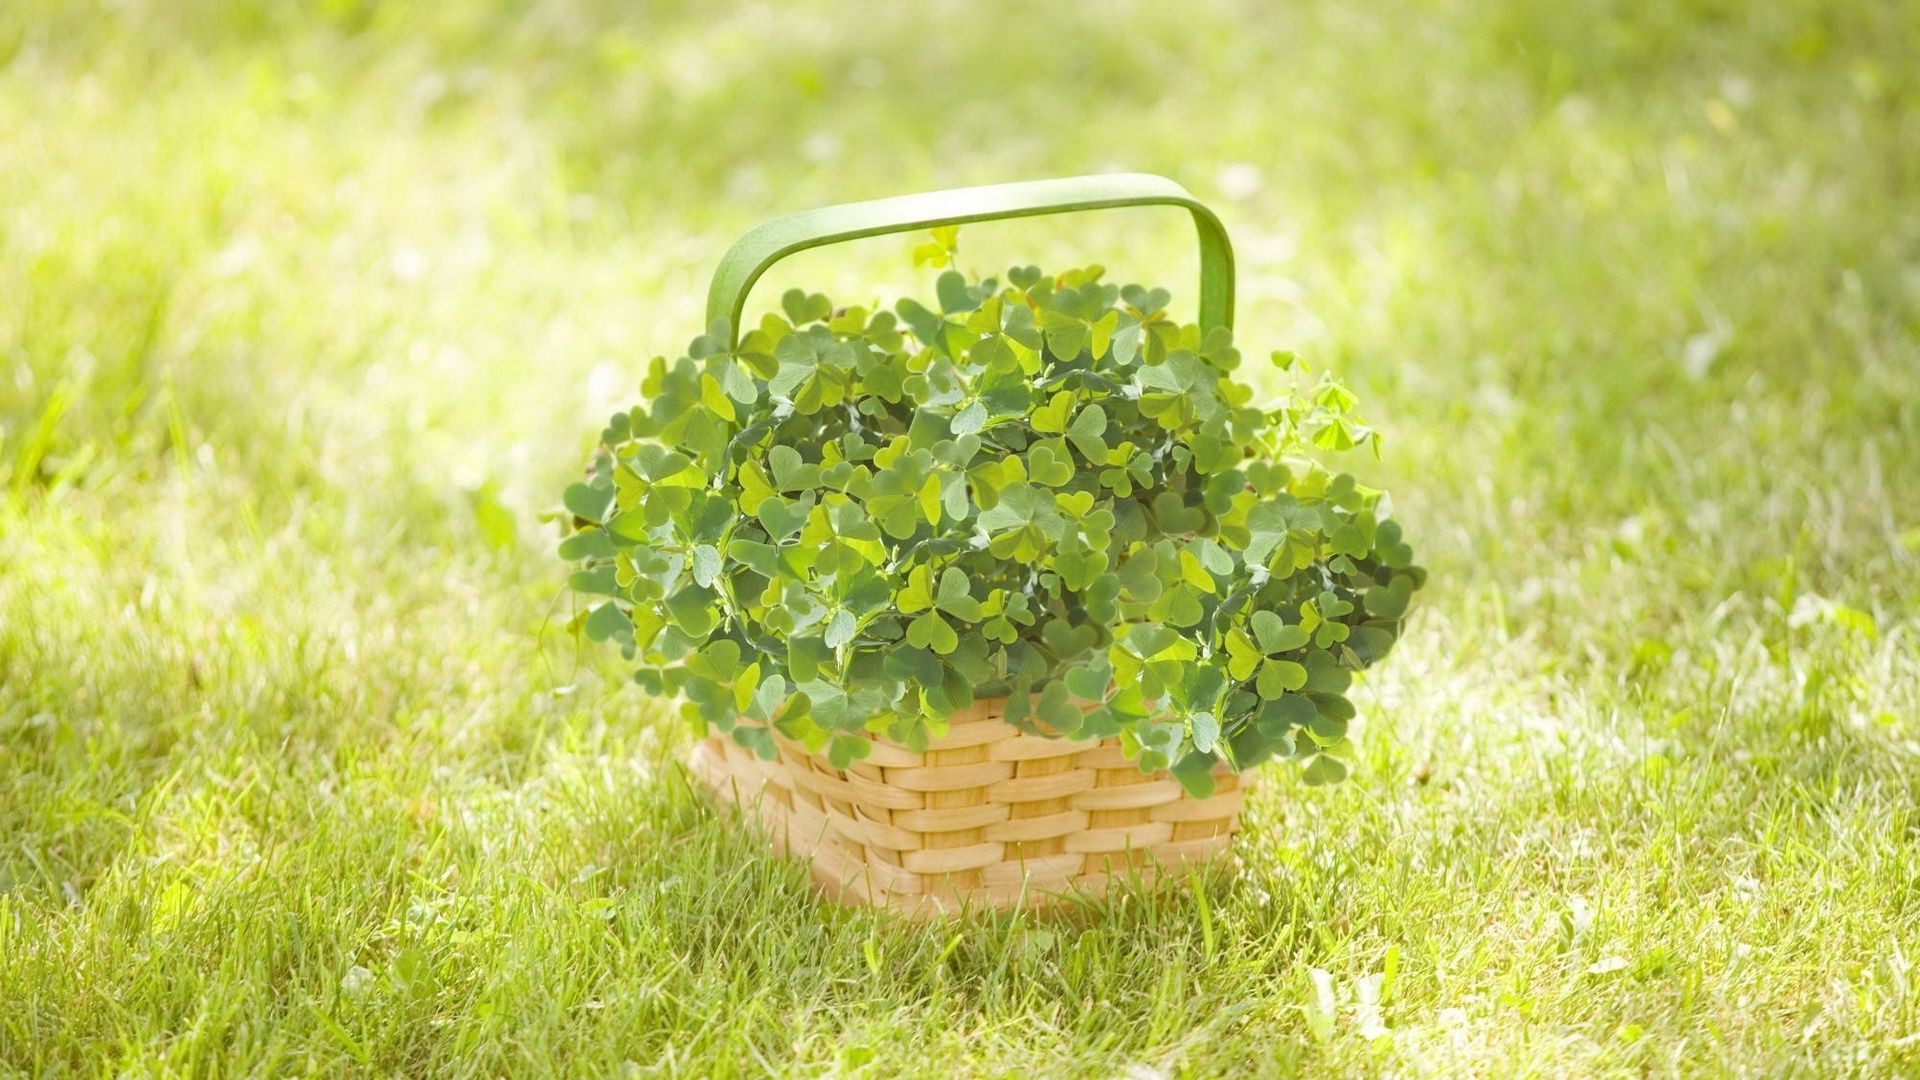 the basket on the grass with quatrefoil